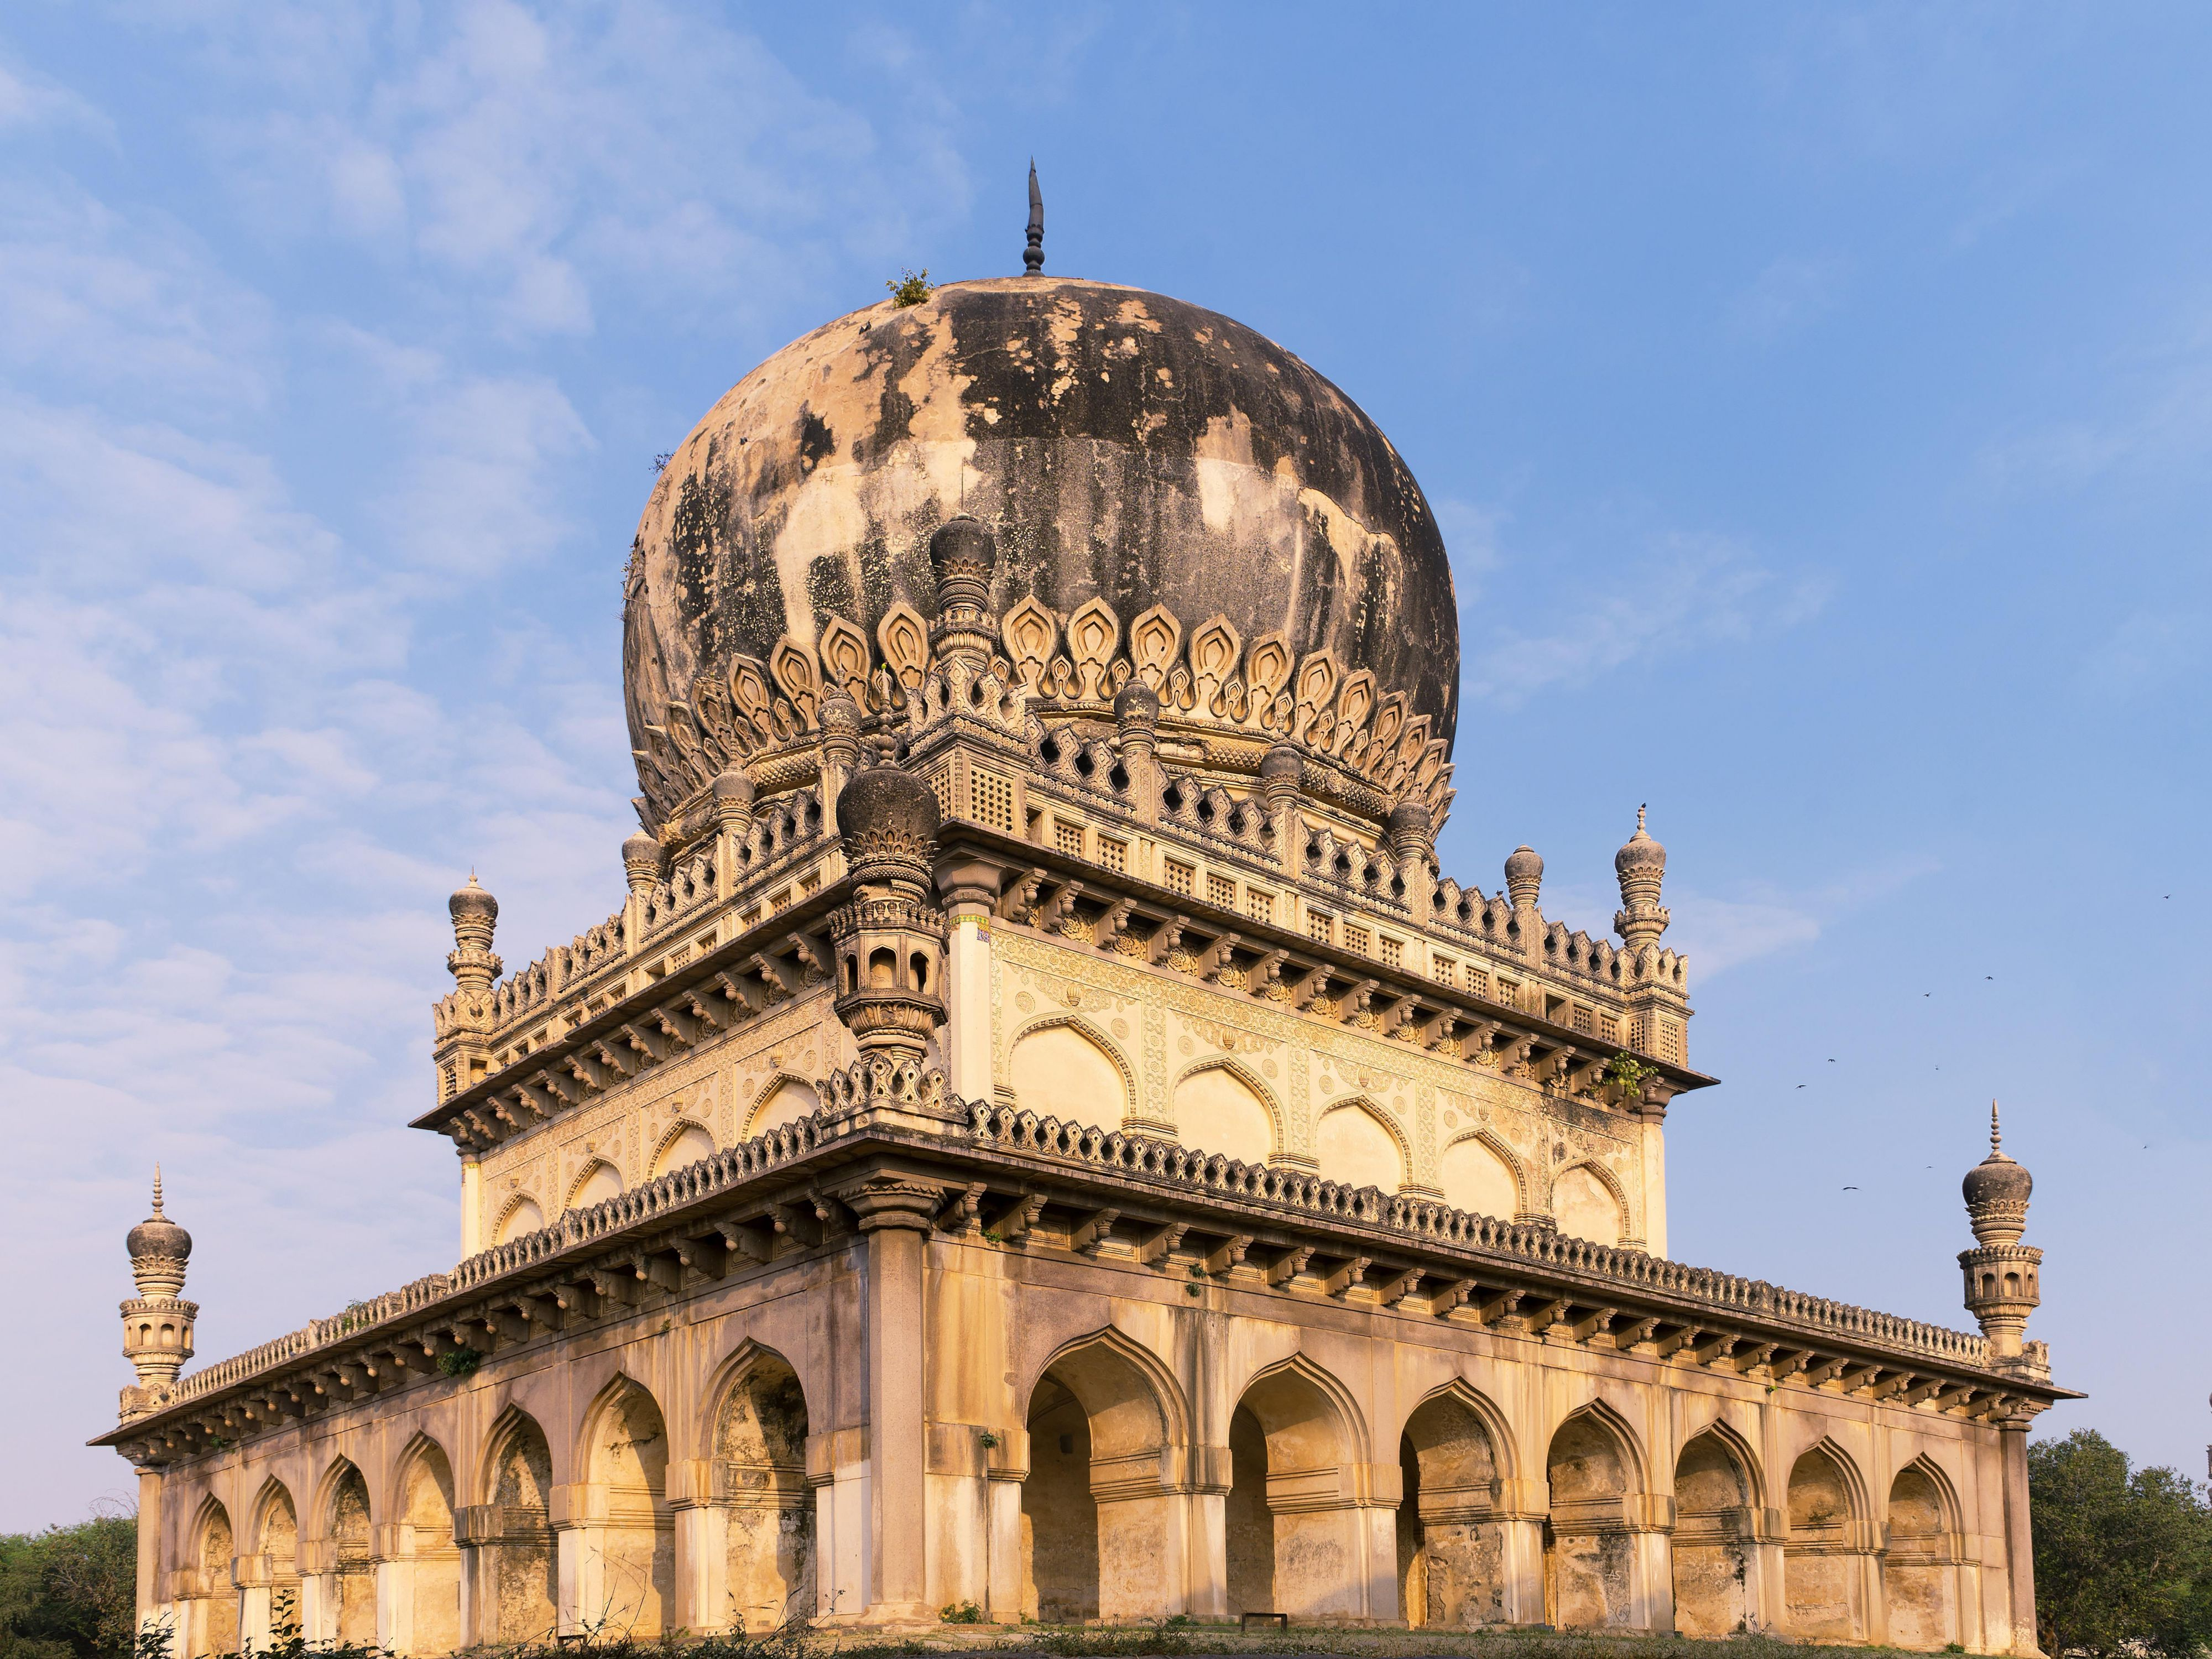 Area Attraction - Qutb Shahi Tombs